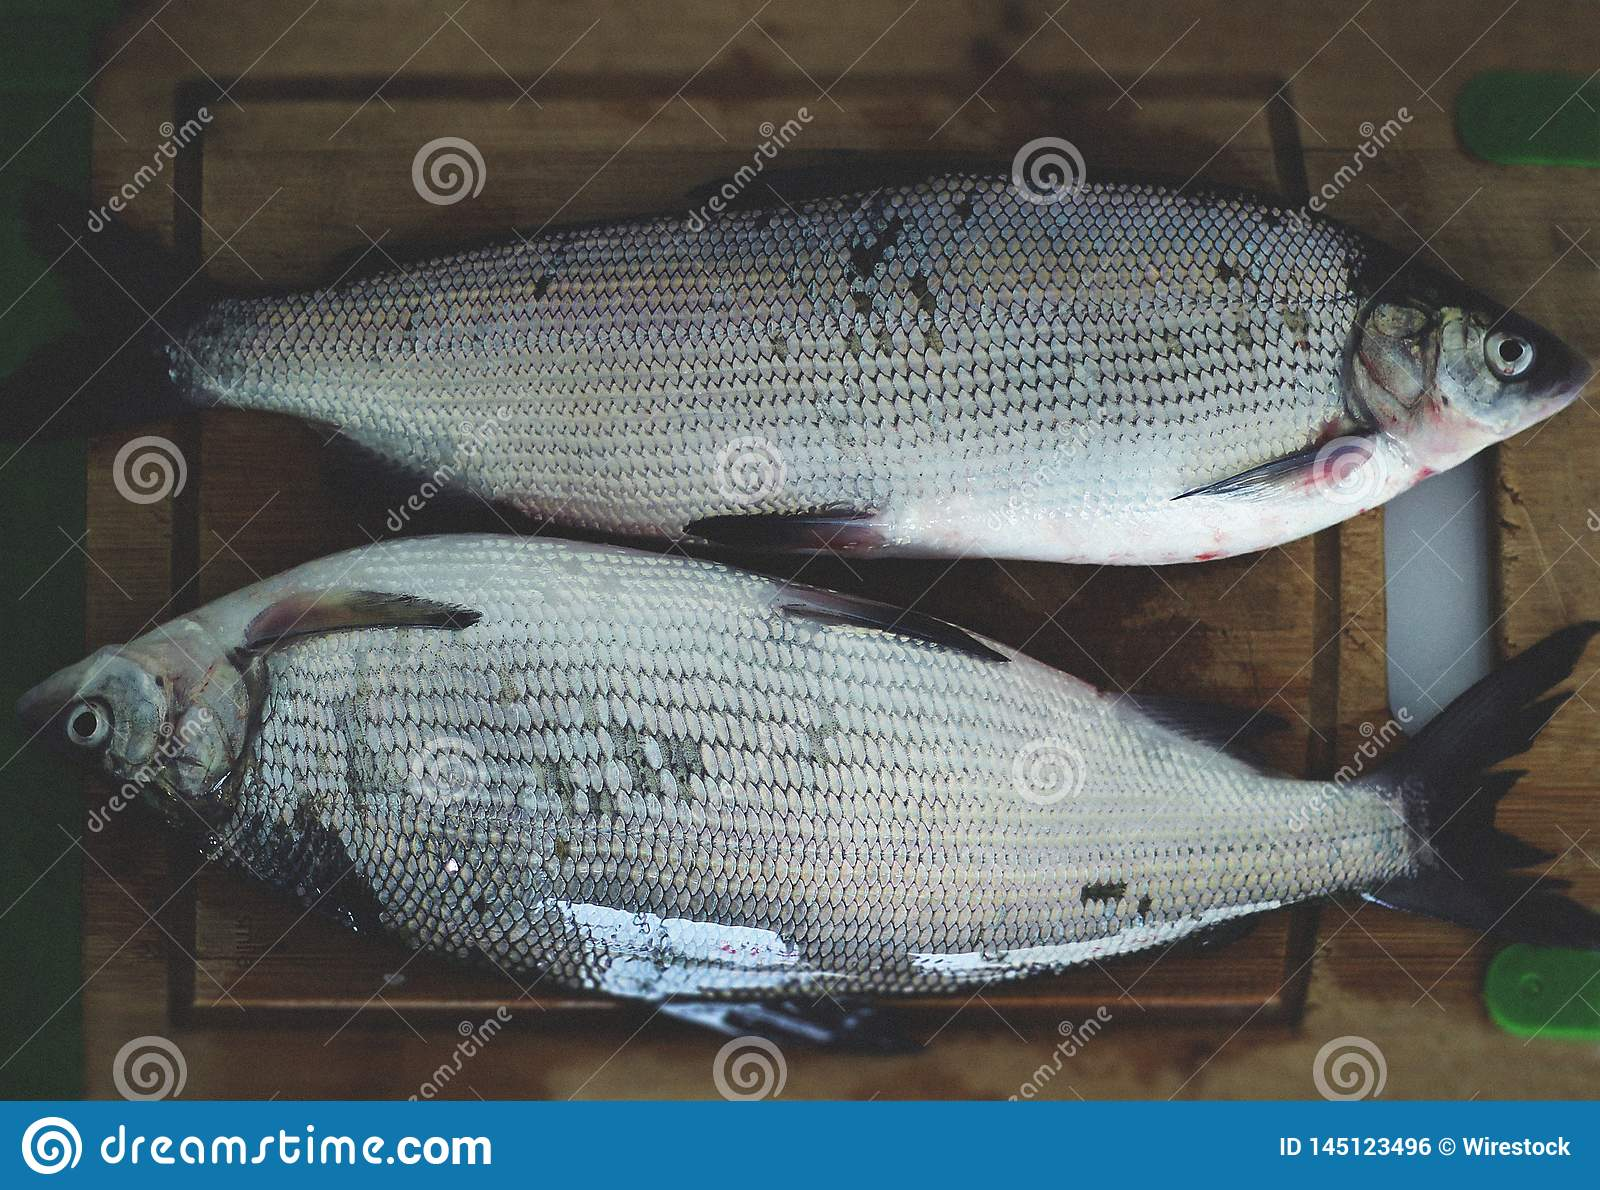 2 fish on a wooden board